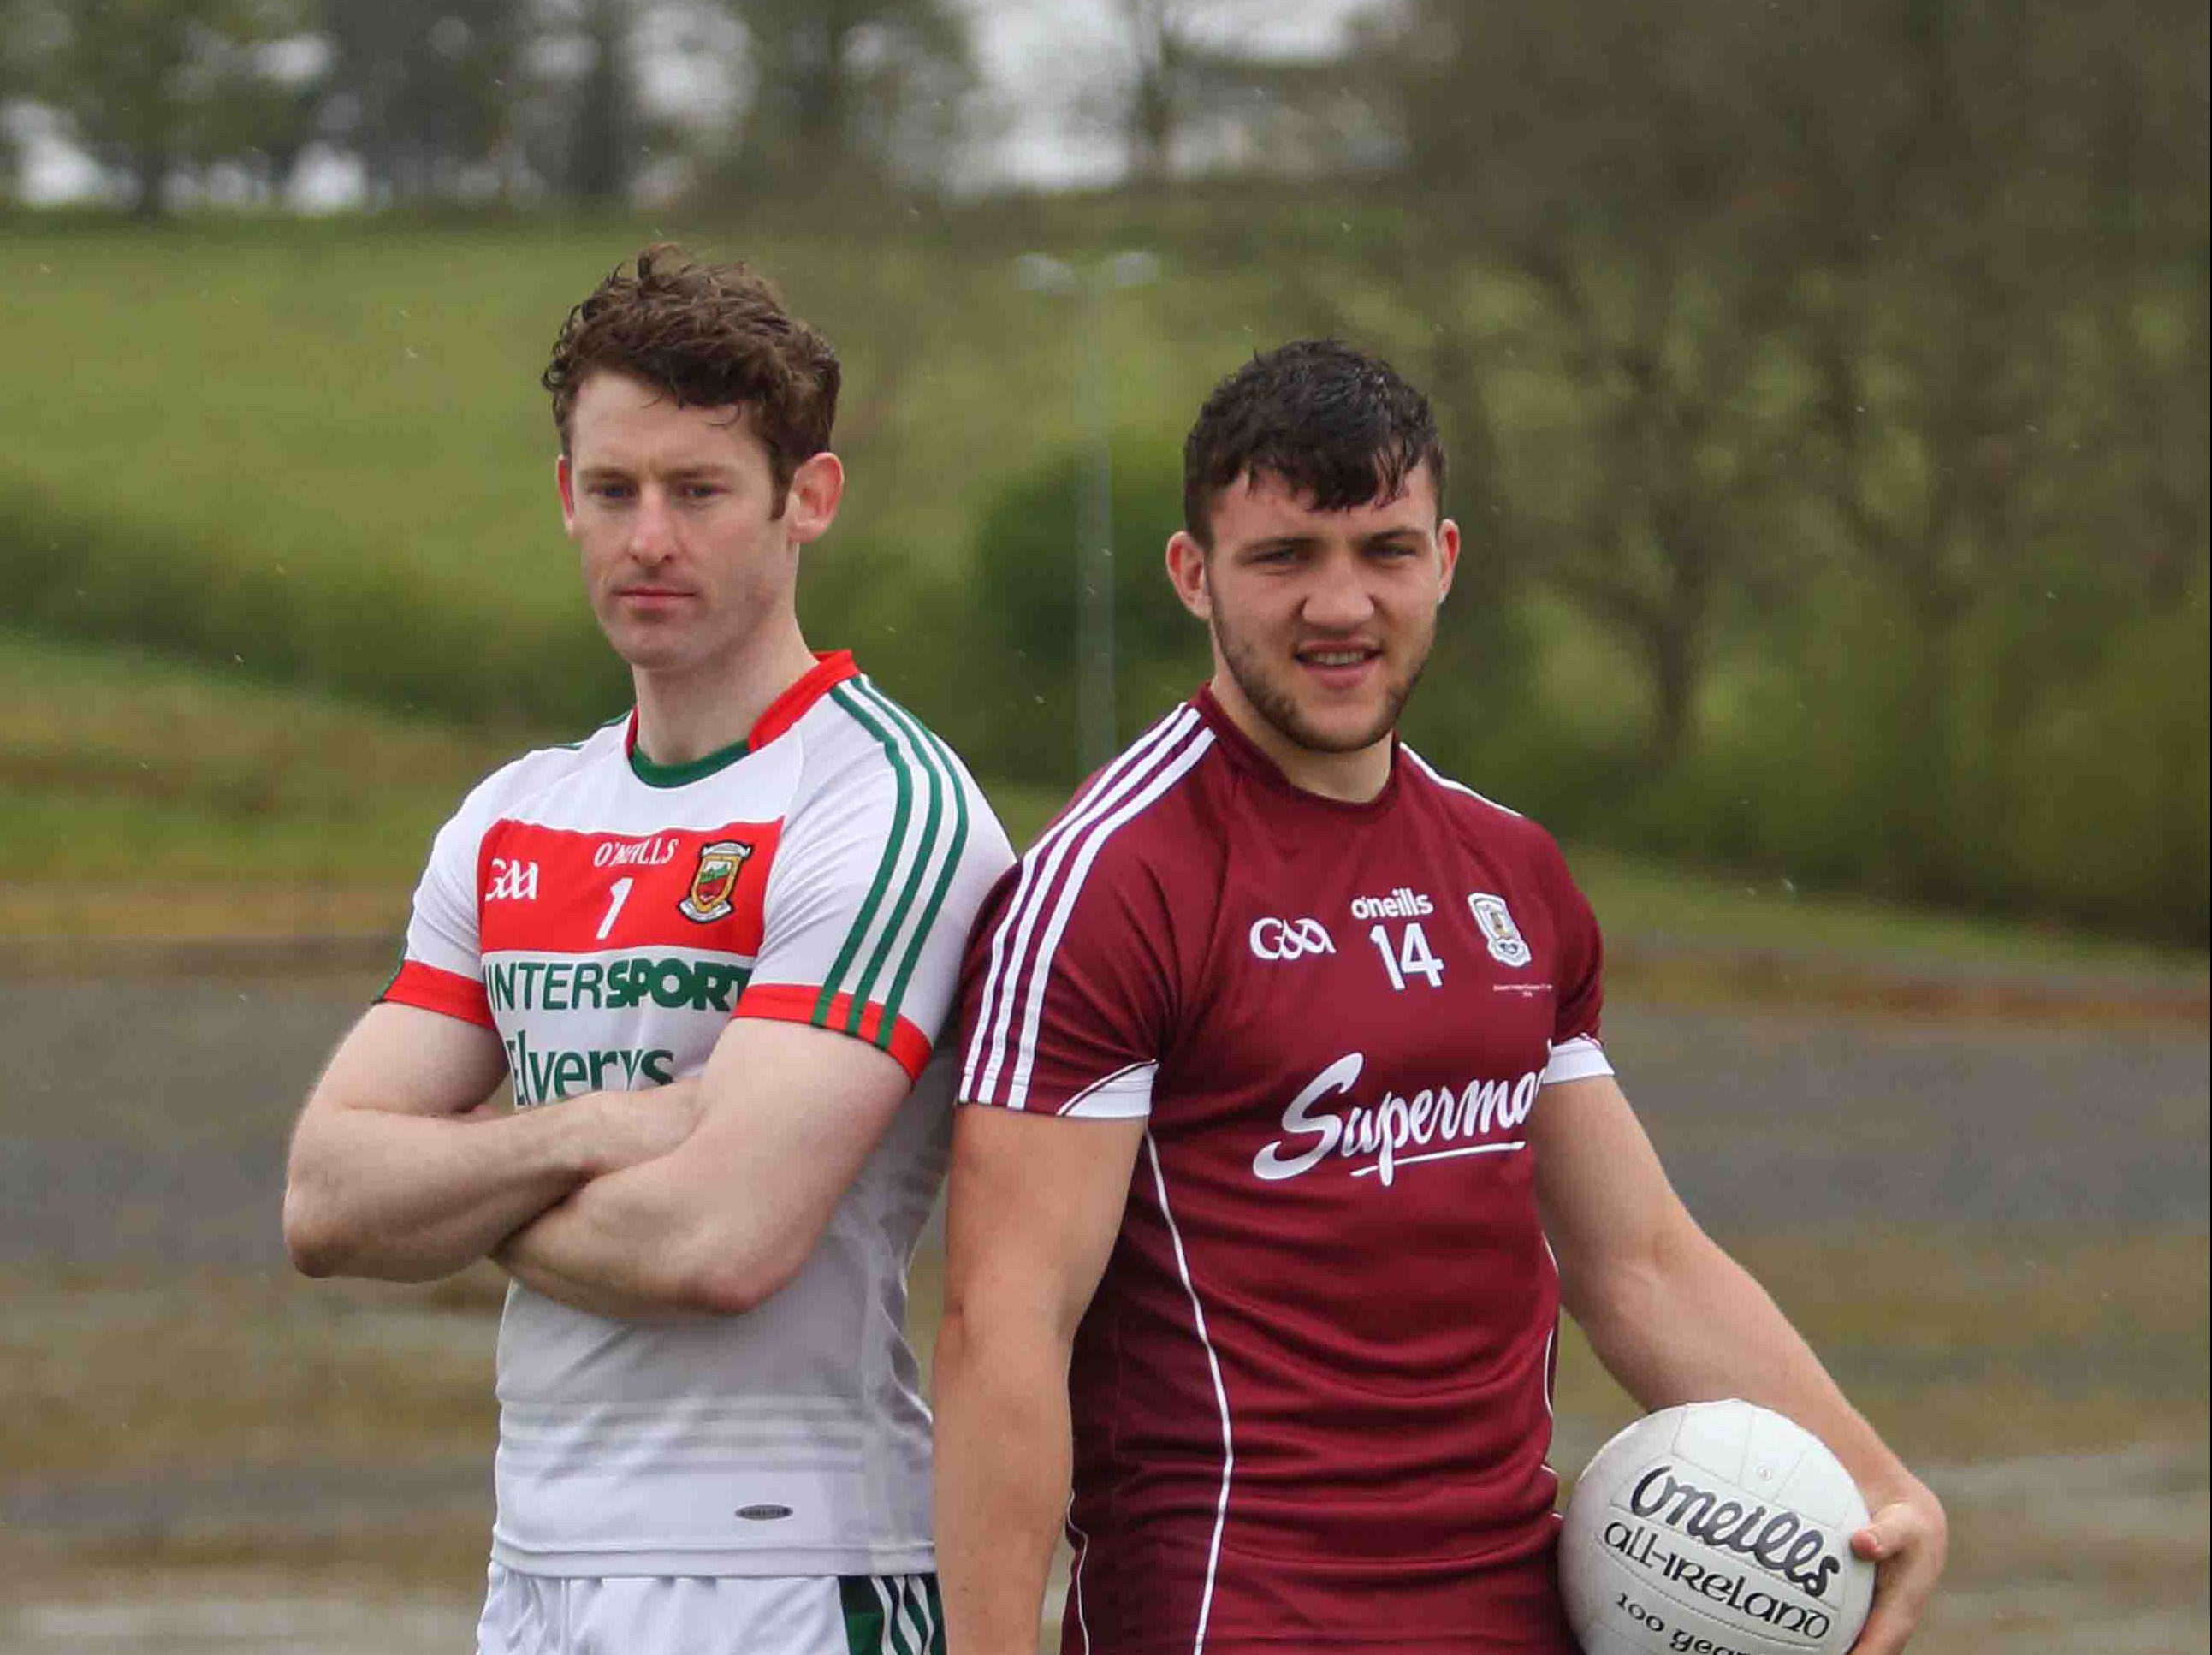 Galway and Mayo name Teams for Sunday's Clash